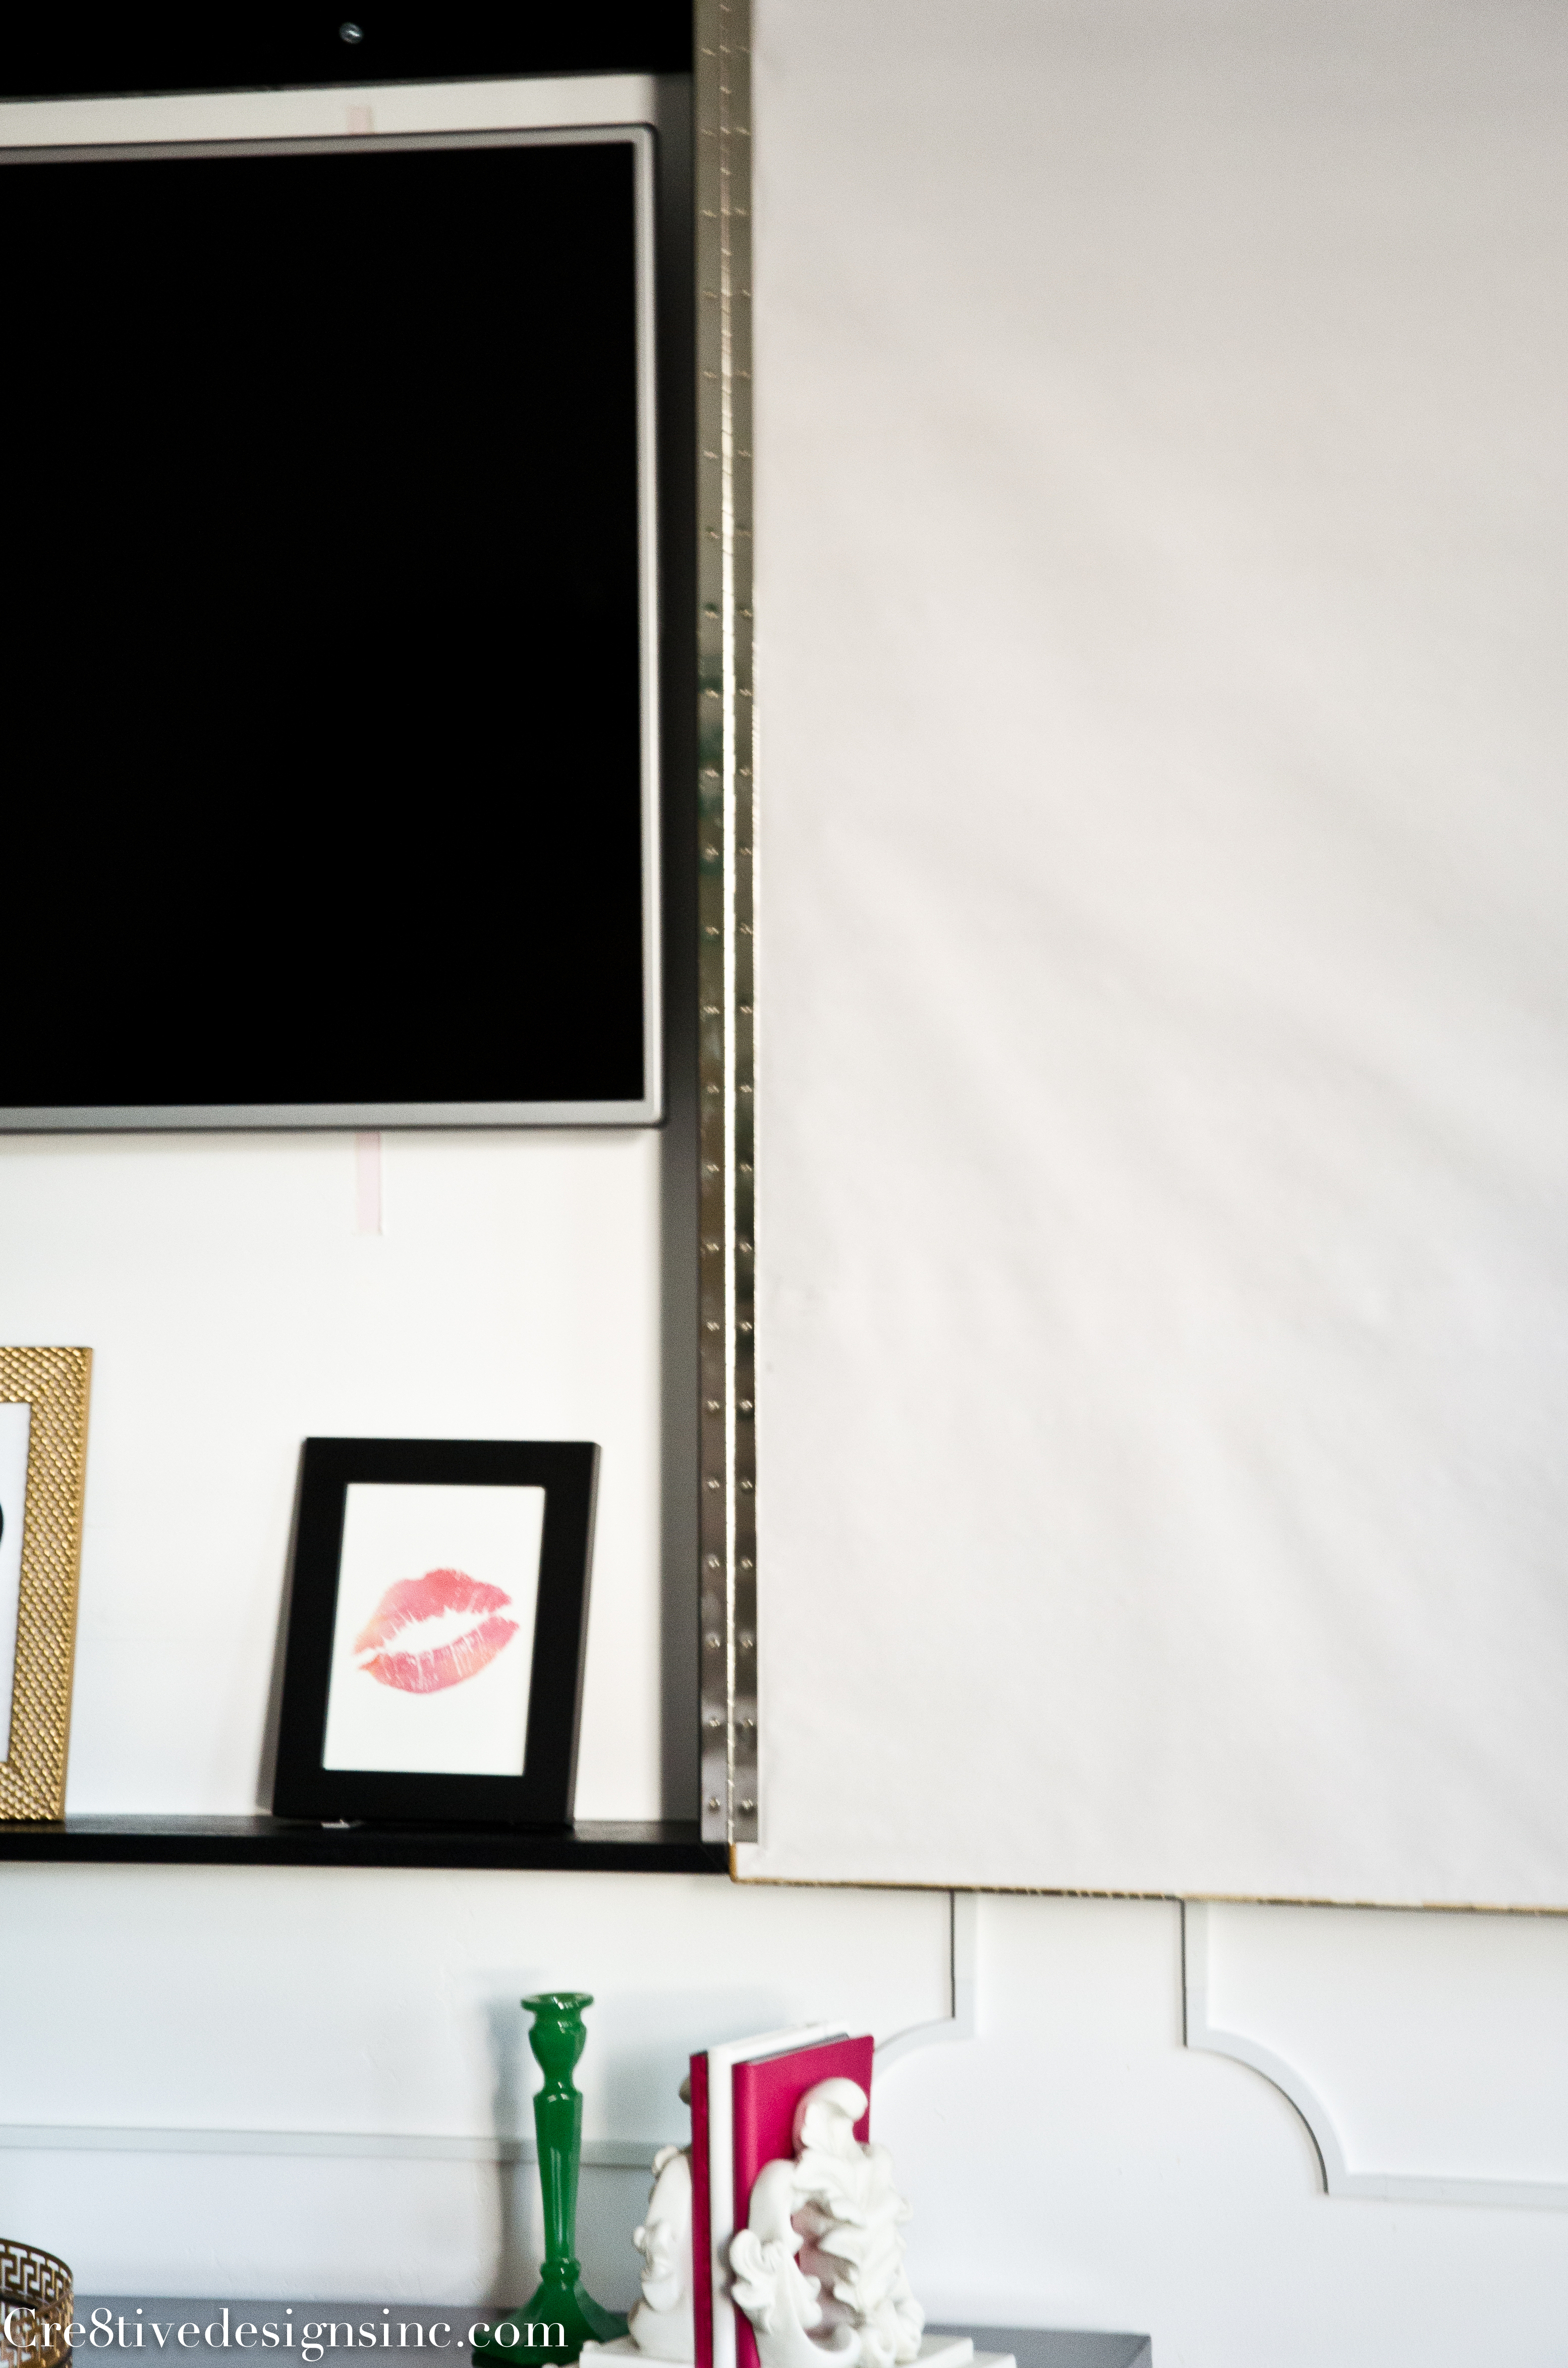 how to hide a flat screen tv with artwork cre8tive designs inc